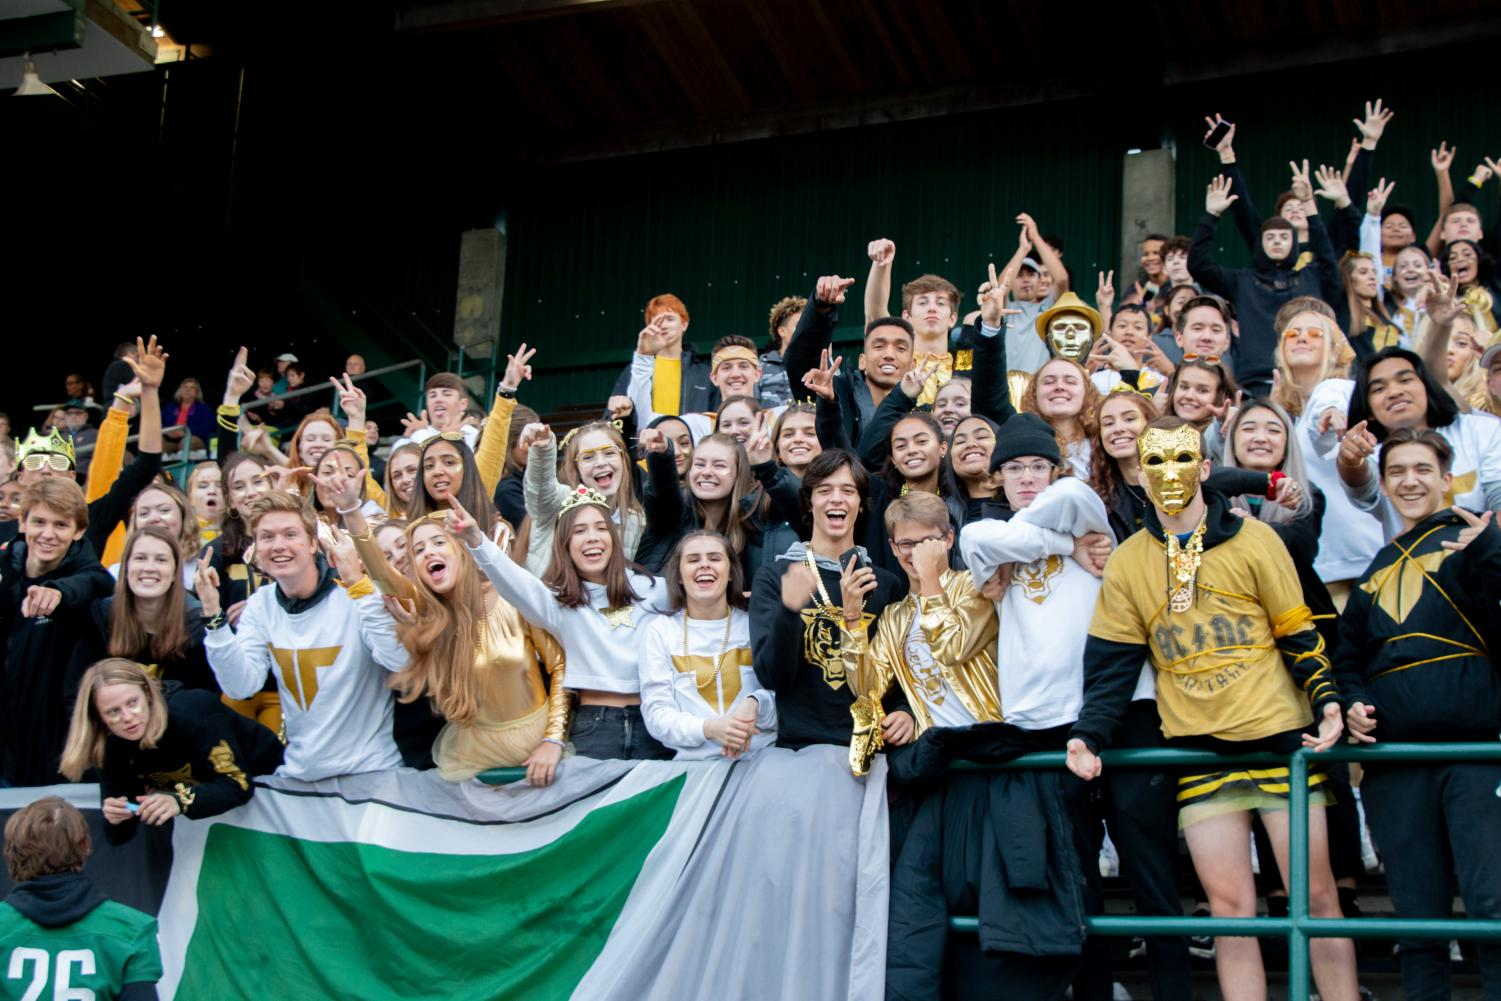 During Friday's game against Lake Oswego, the student section shows some spirit. The cheer, Truckin, was banned mid-game when cheerleaders and administration deemed it too dangerous.